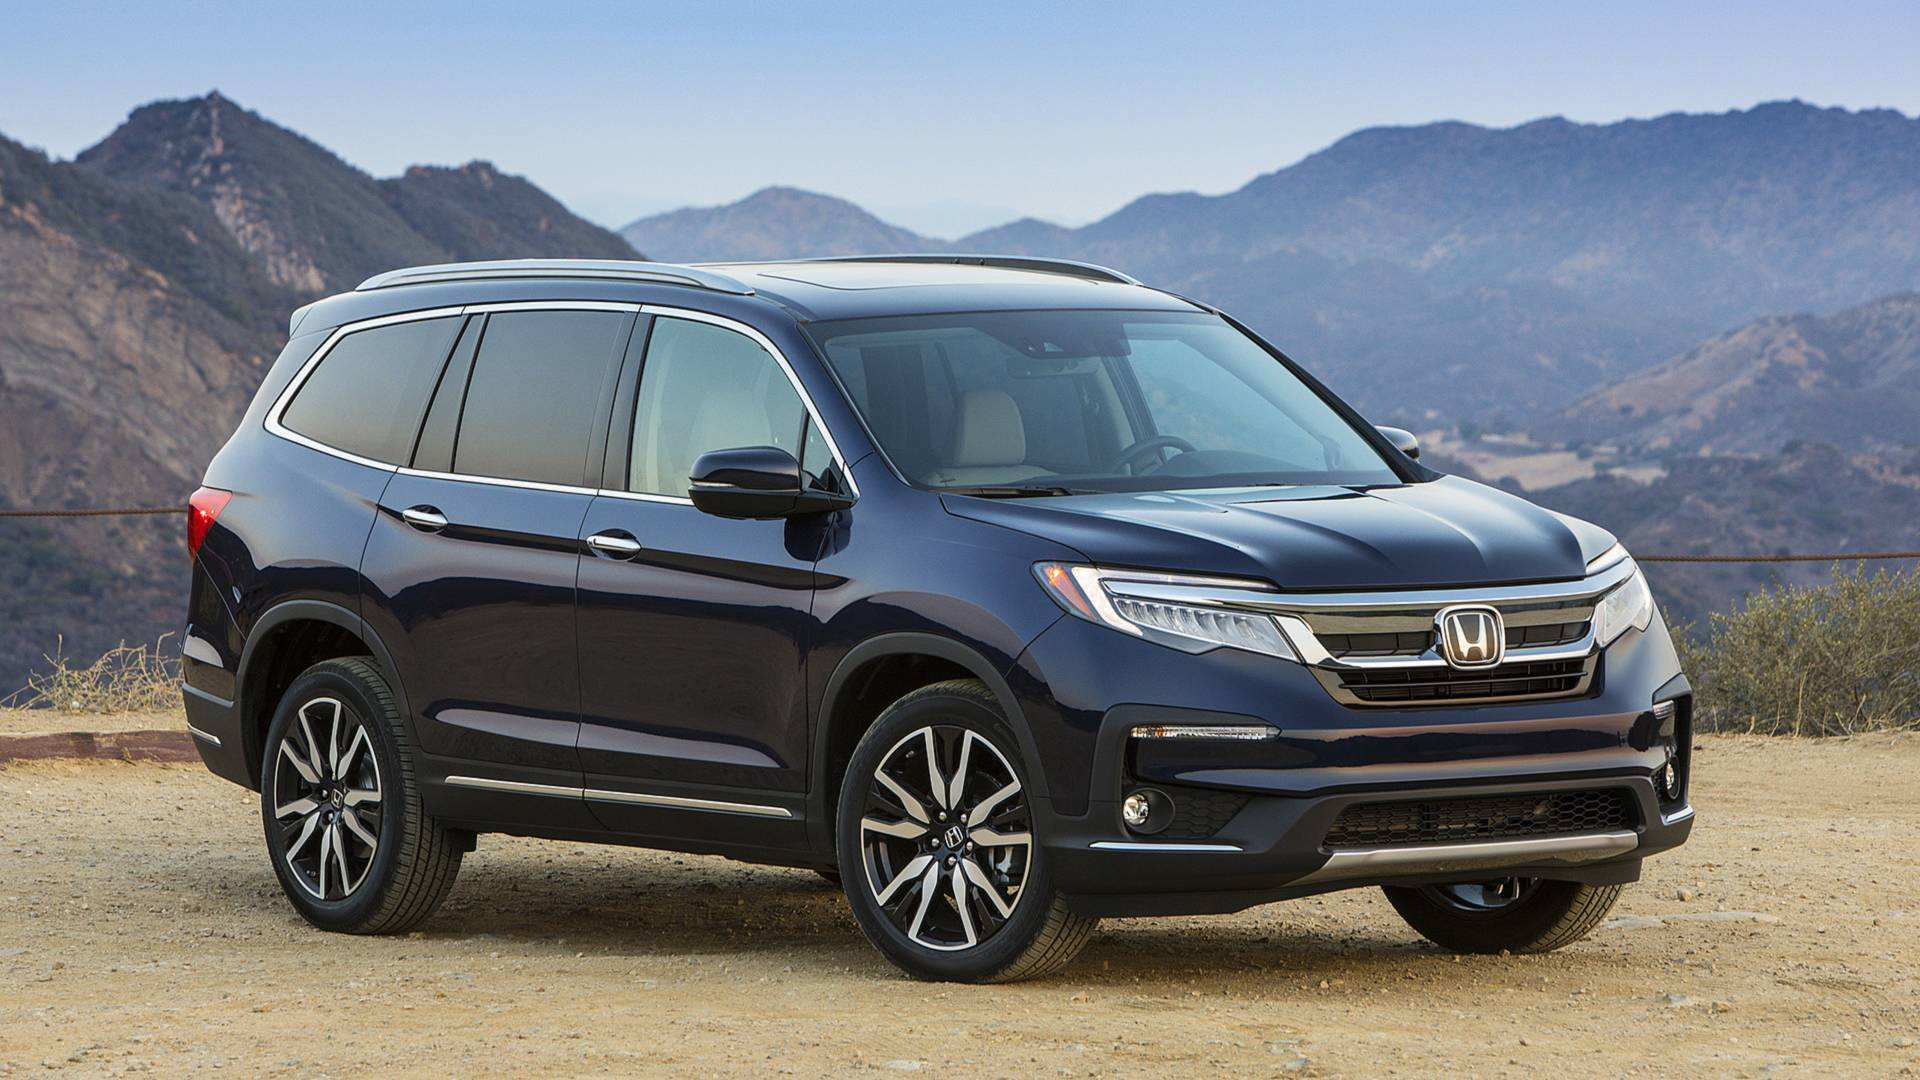 97 All New 2019 Honda Pilot Pricing for 2019 Honda Pilot